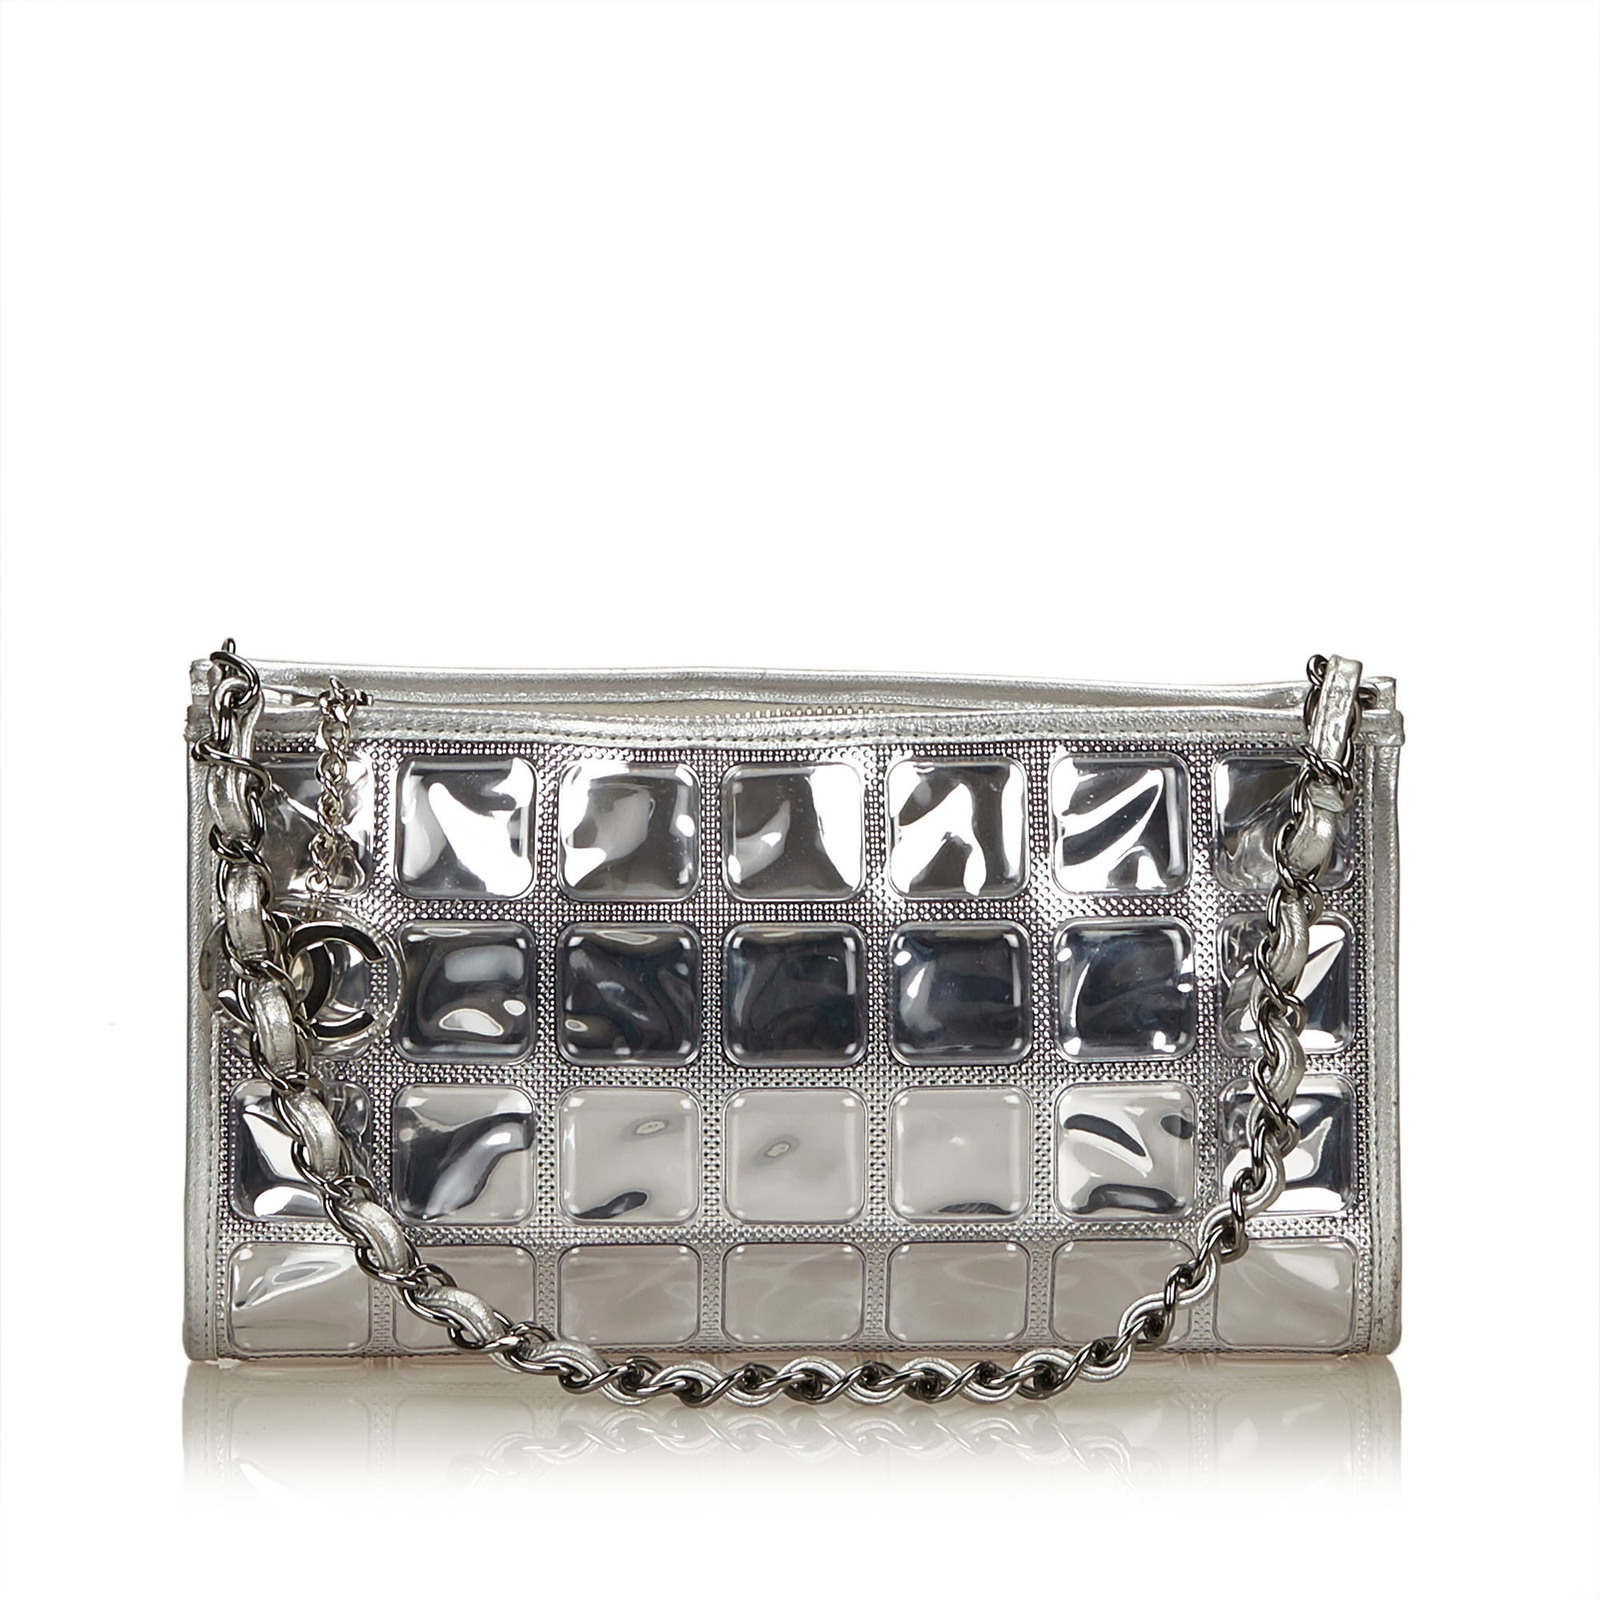 cc9af748cee2 Pre-loved Chanel Silver PVC Plastic Ice Cube Flap Bag Italy - $704.49